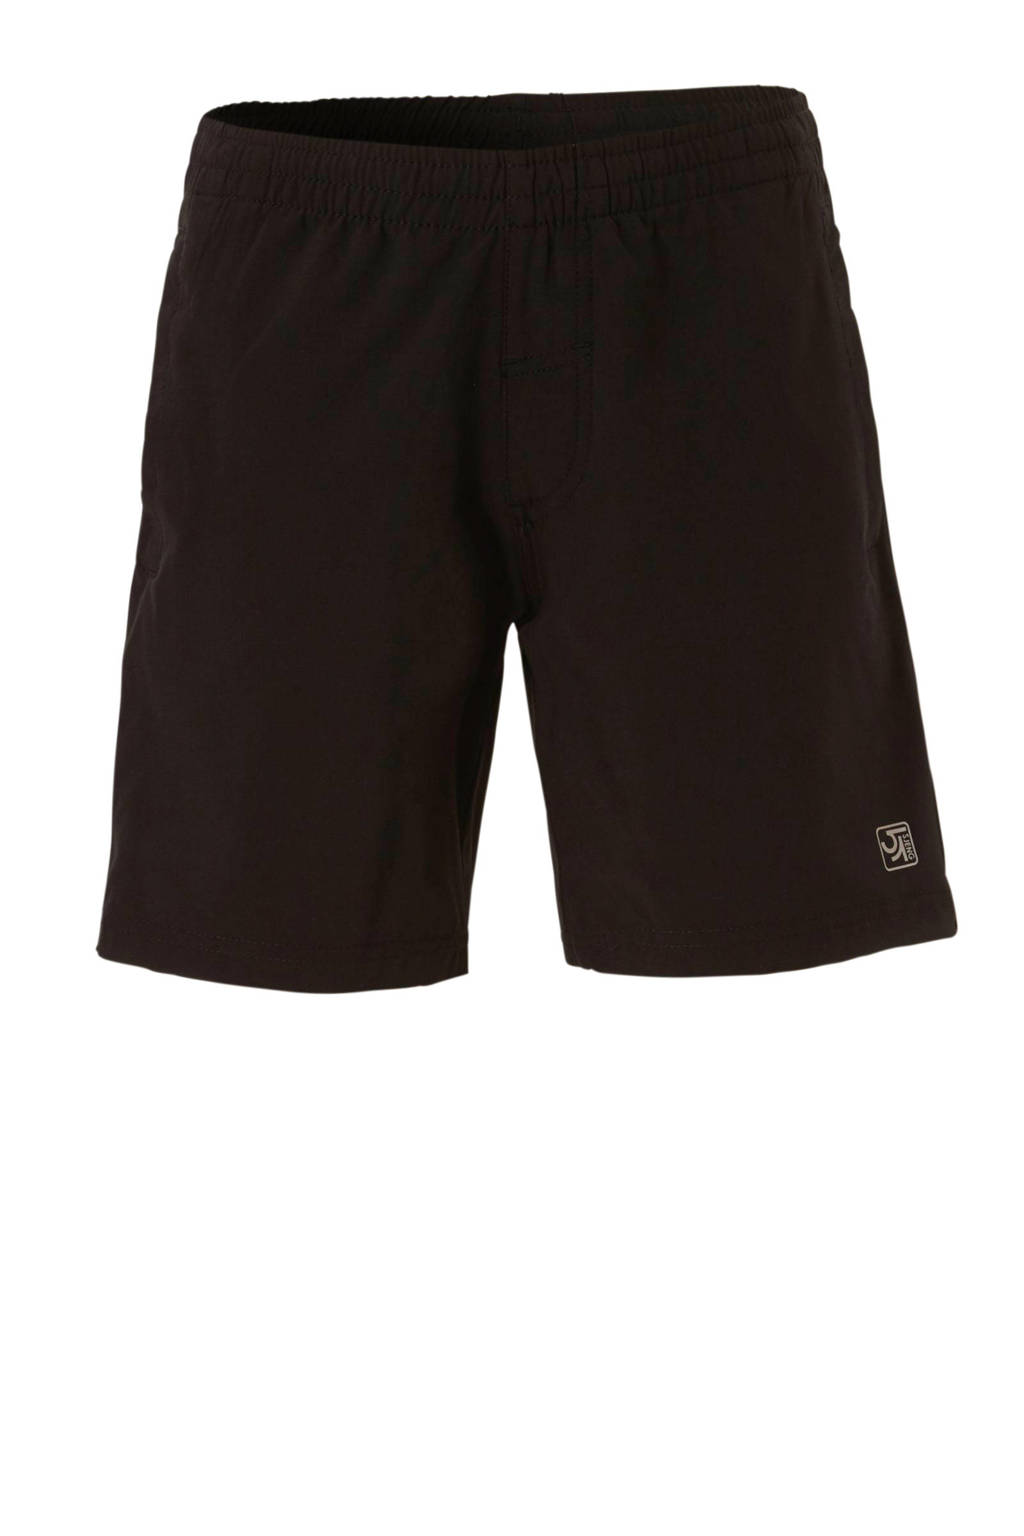 Sjeng Sports   sportshort Set jr zwart, Zwart